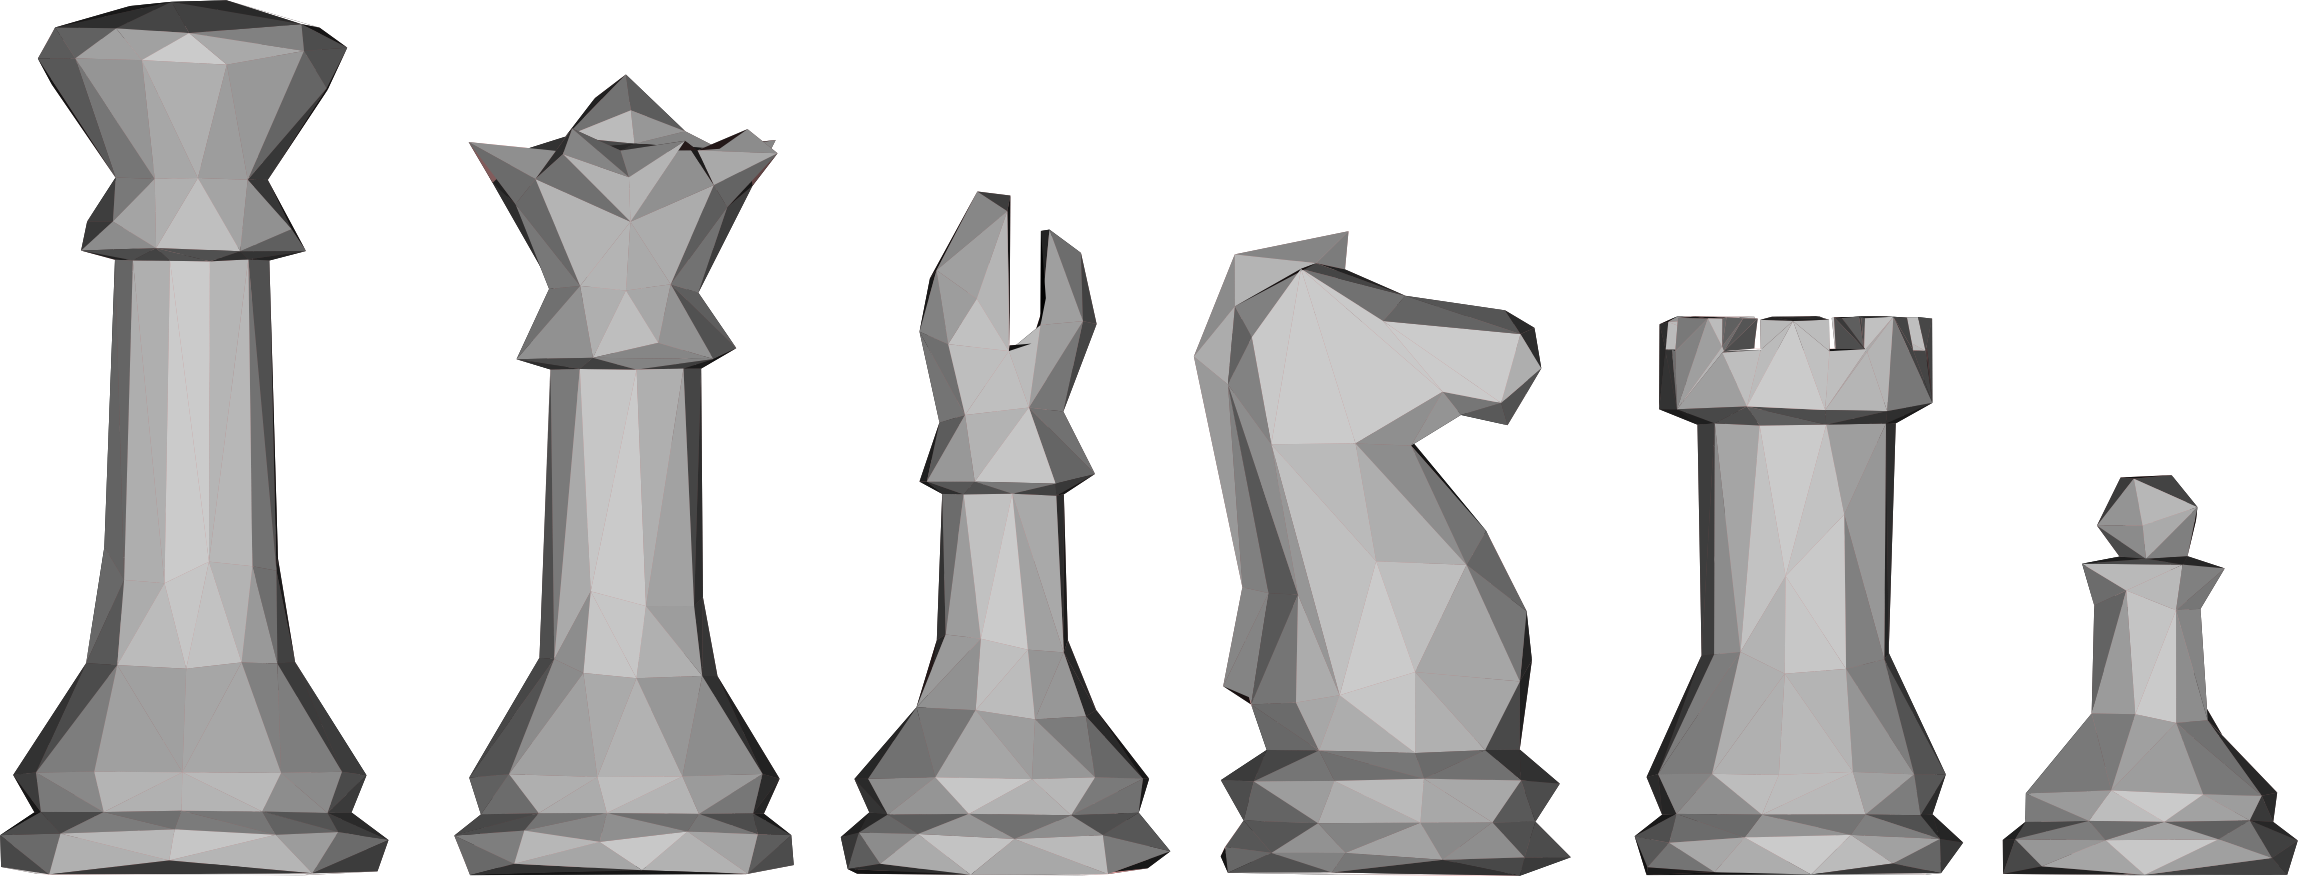 Low Poly Chess Pieces by GDJ